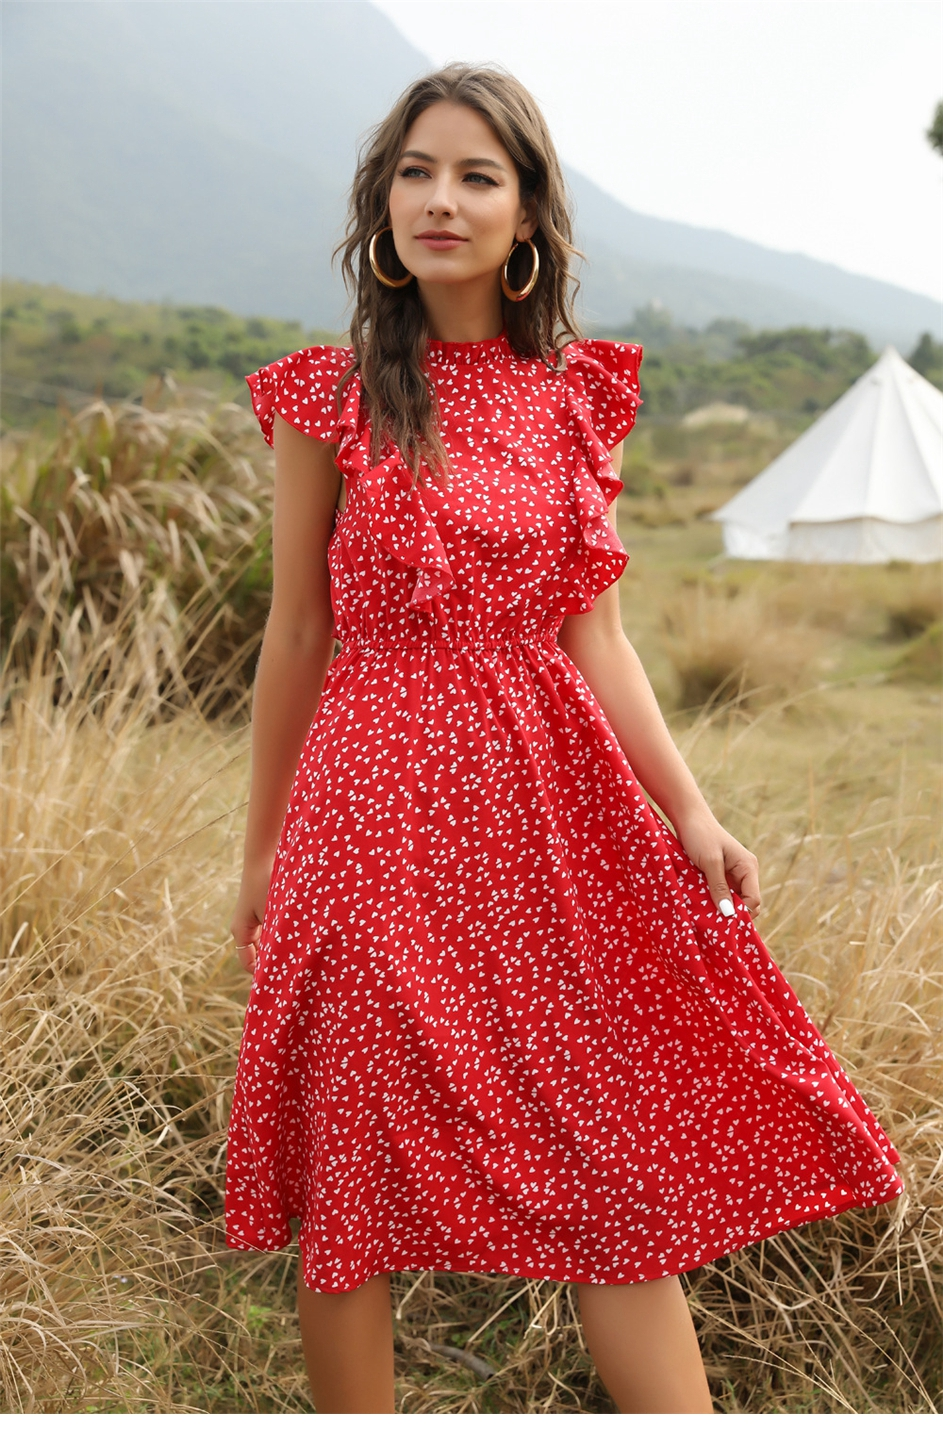 The elegant front view of Women's Casual Butterfly Sleeve Ruffles Chiffon Summer Dress